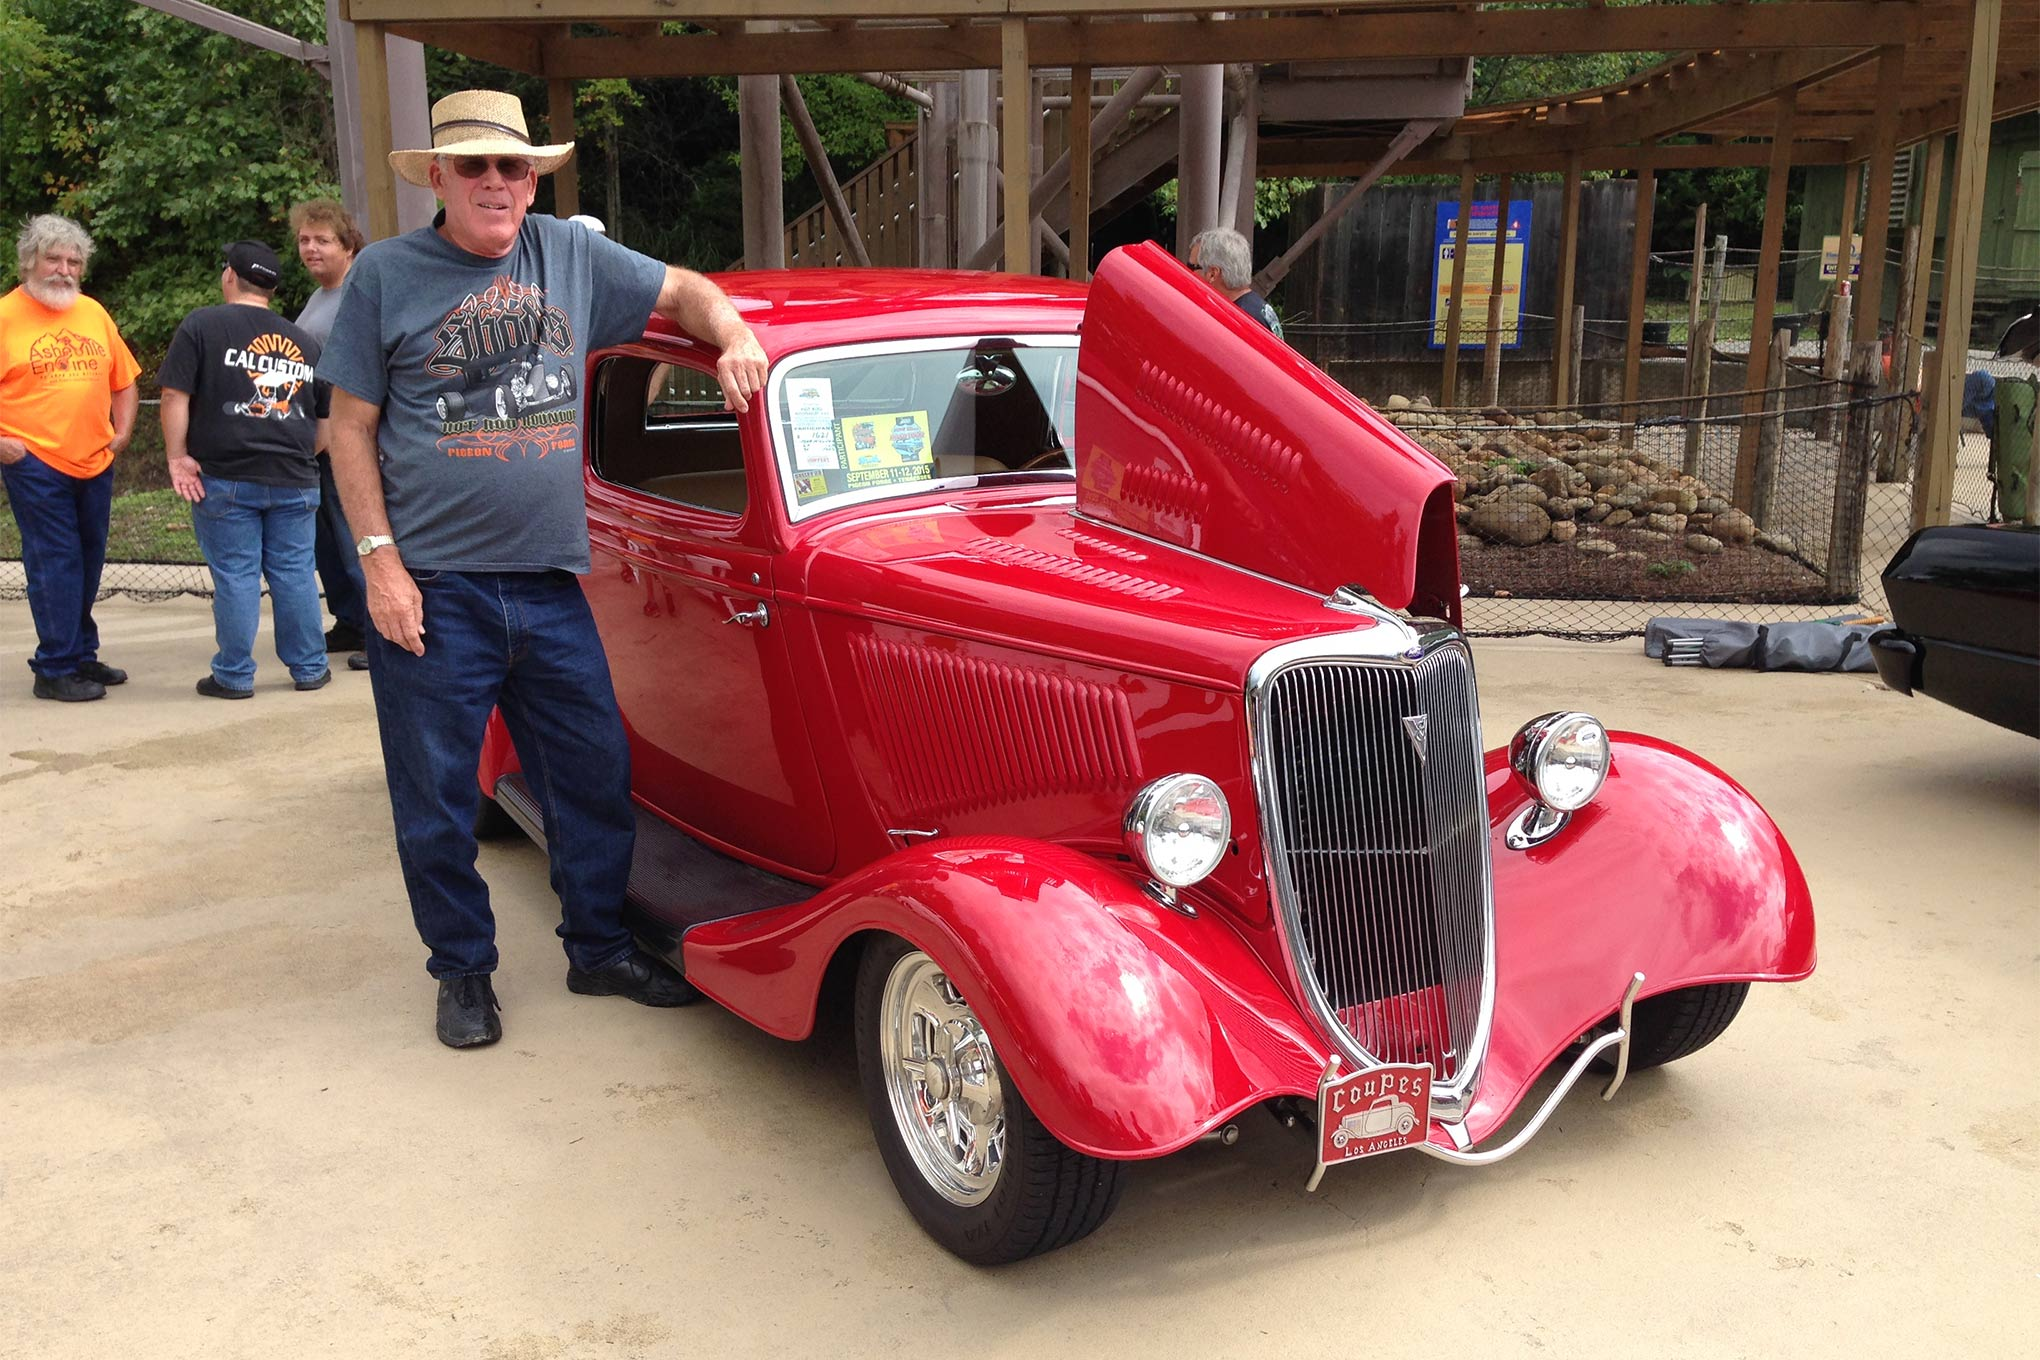 Mike McClung was the recipient of the first annual ARP/STREET RODDER Road Tour Award at the Hot Rod Roundup. Mike is from San Pedro, CA, but he spends many miles each year behind the wheel of his 1934 Ford. He has logged over 300,000 miles in the car since the '70s.